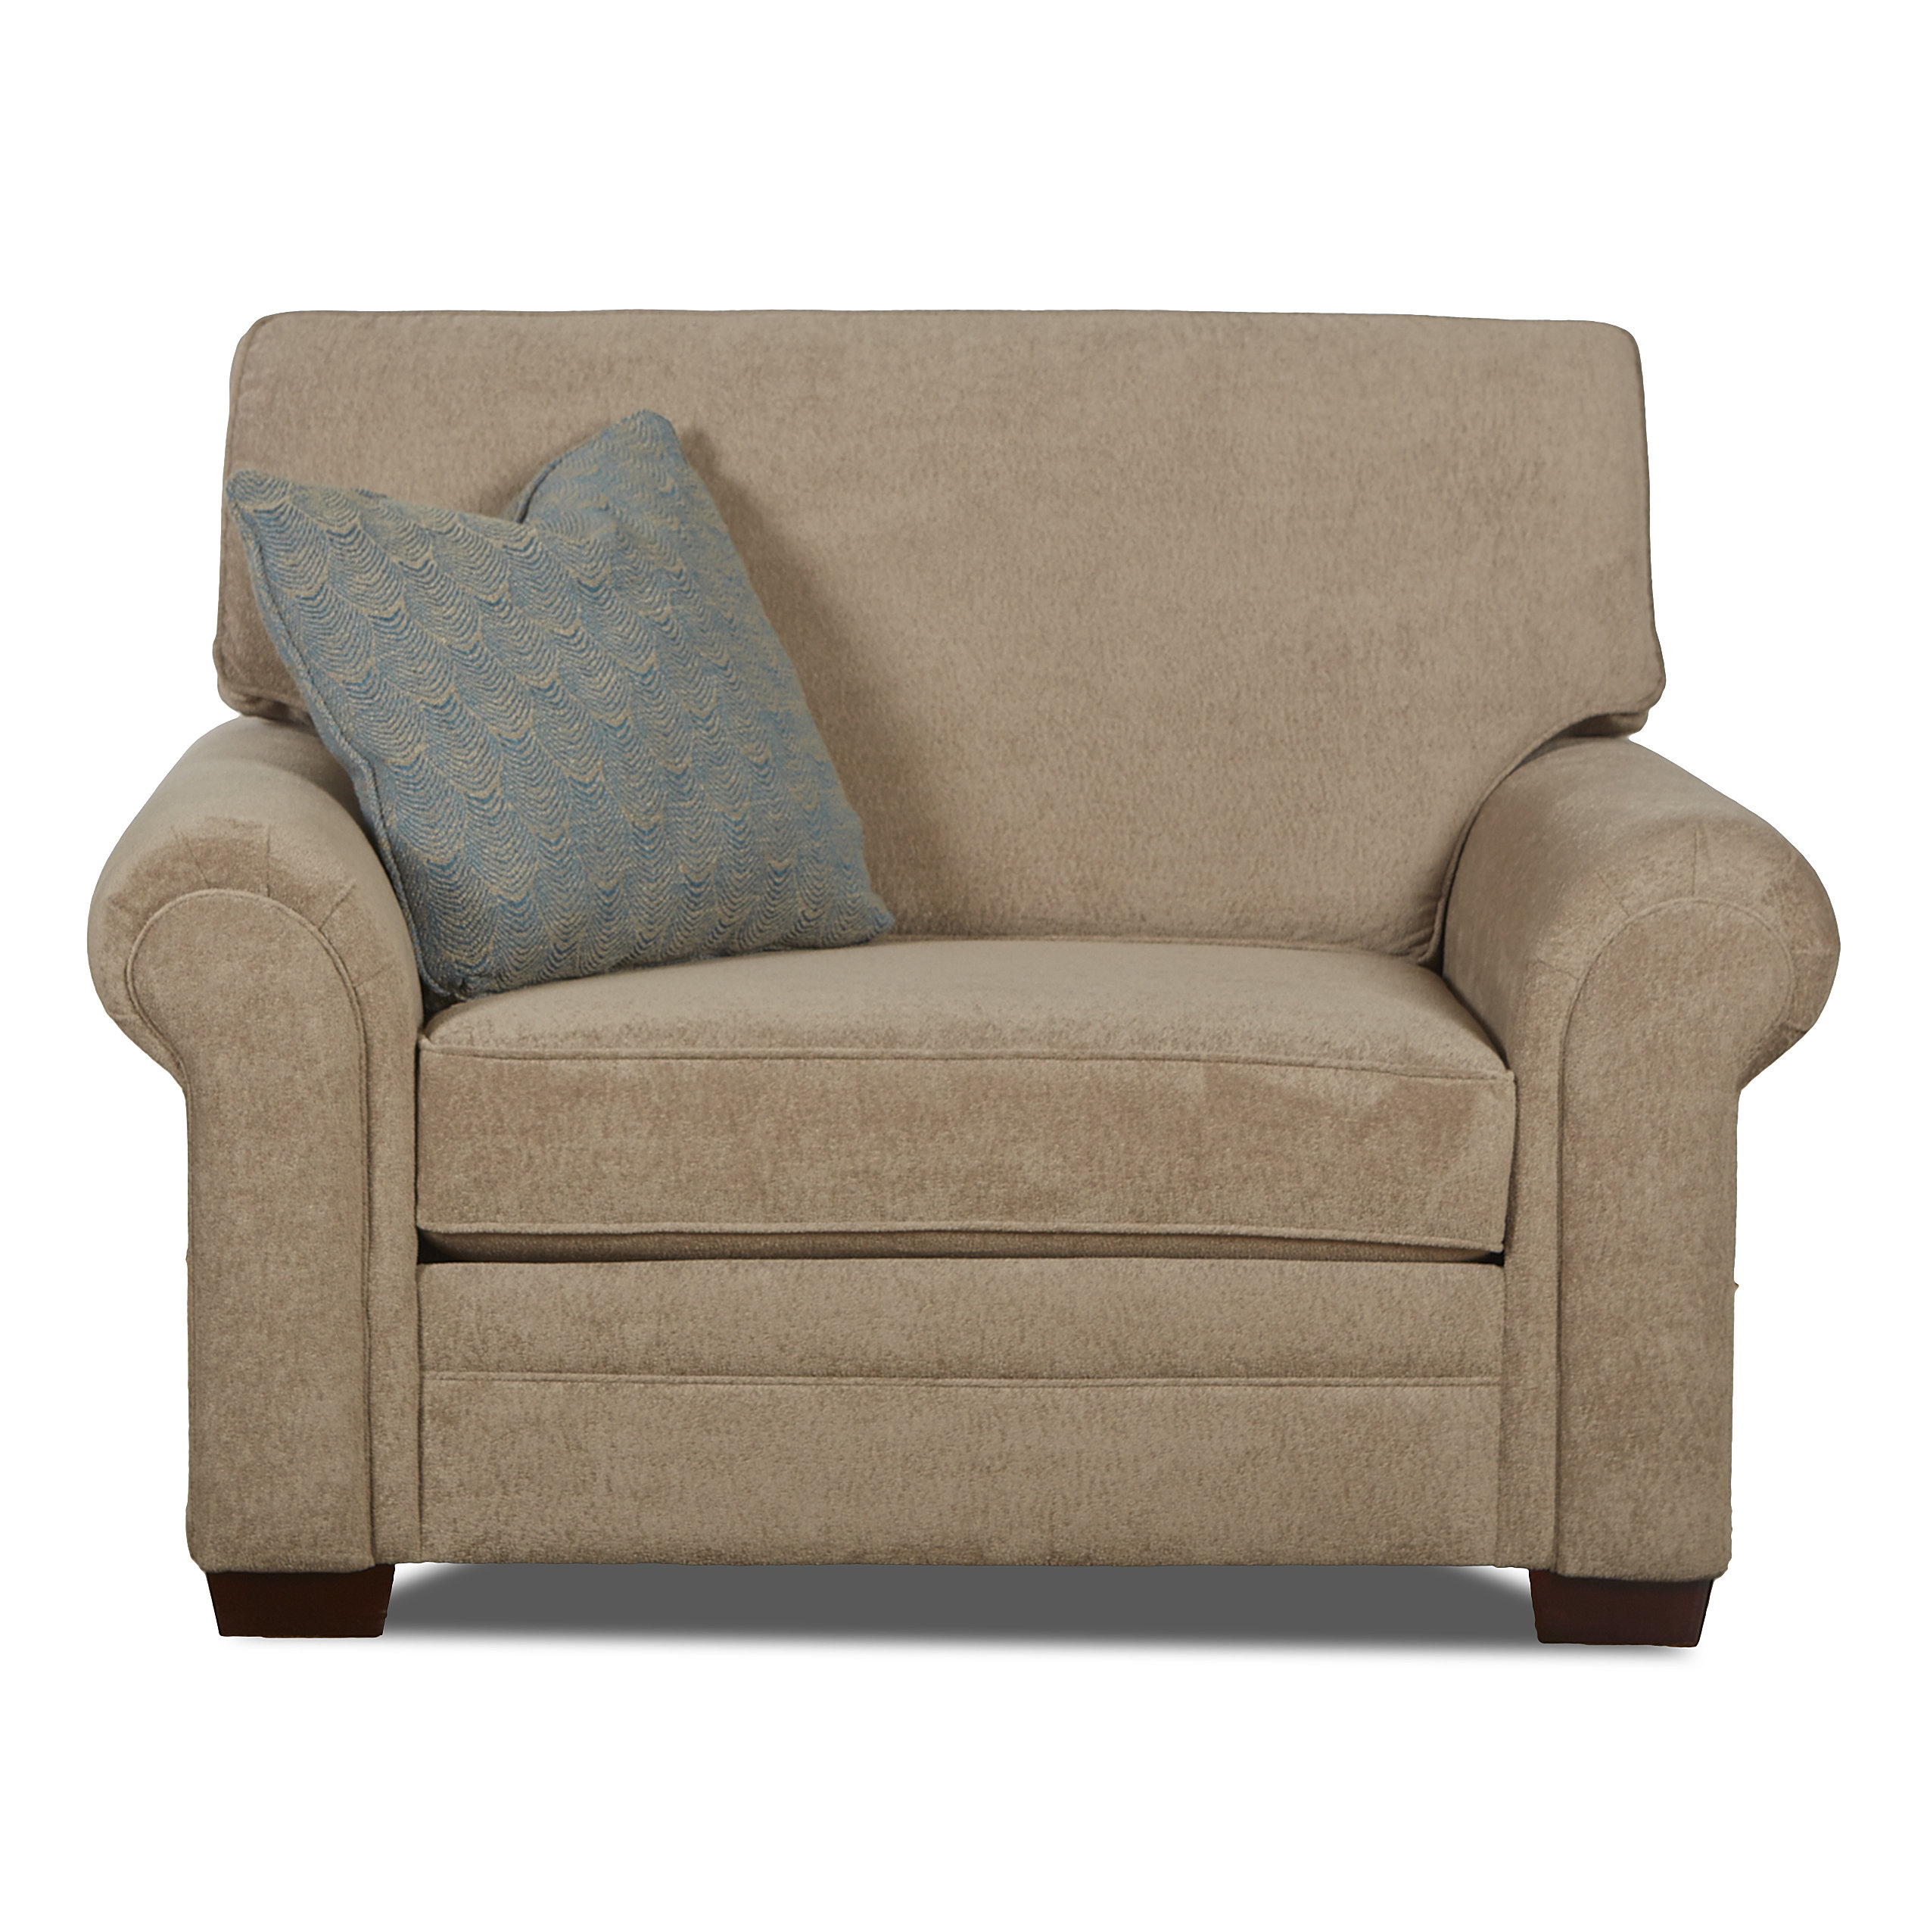 Klaussner Furniture Surrey Chair And A Half | Wayfair Throughout Bailey Angled Track Arm Swivel Gliders (Image 17 of 25)